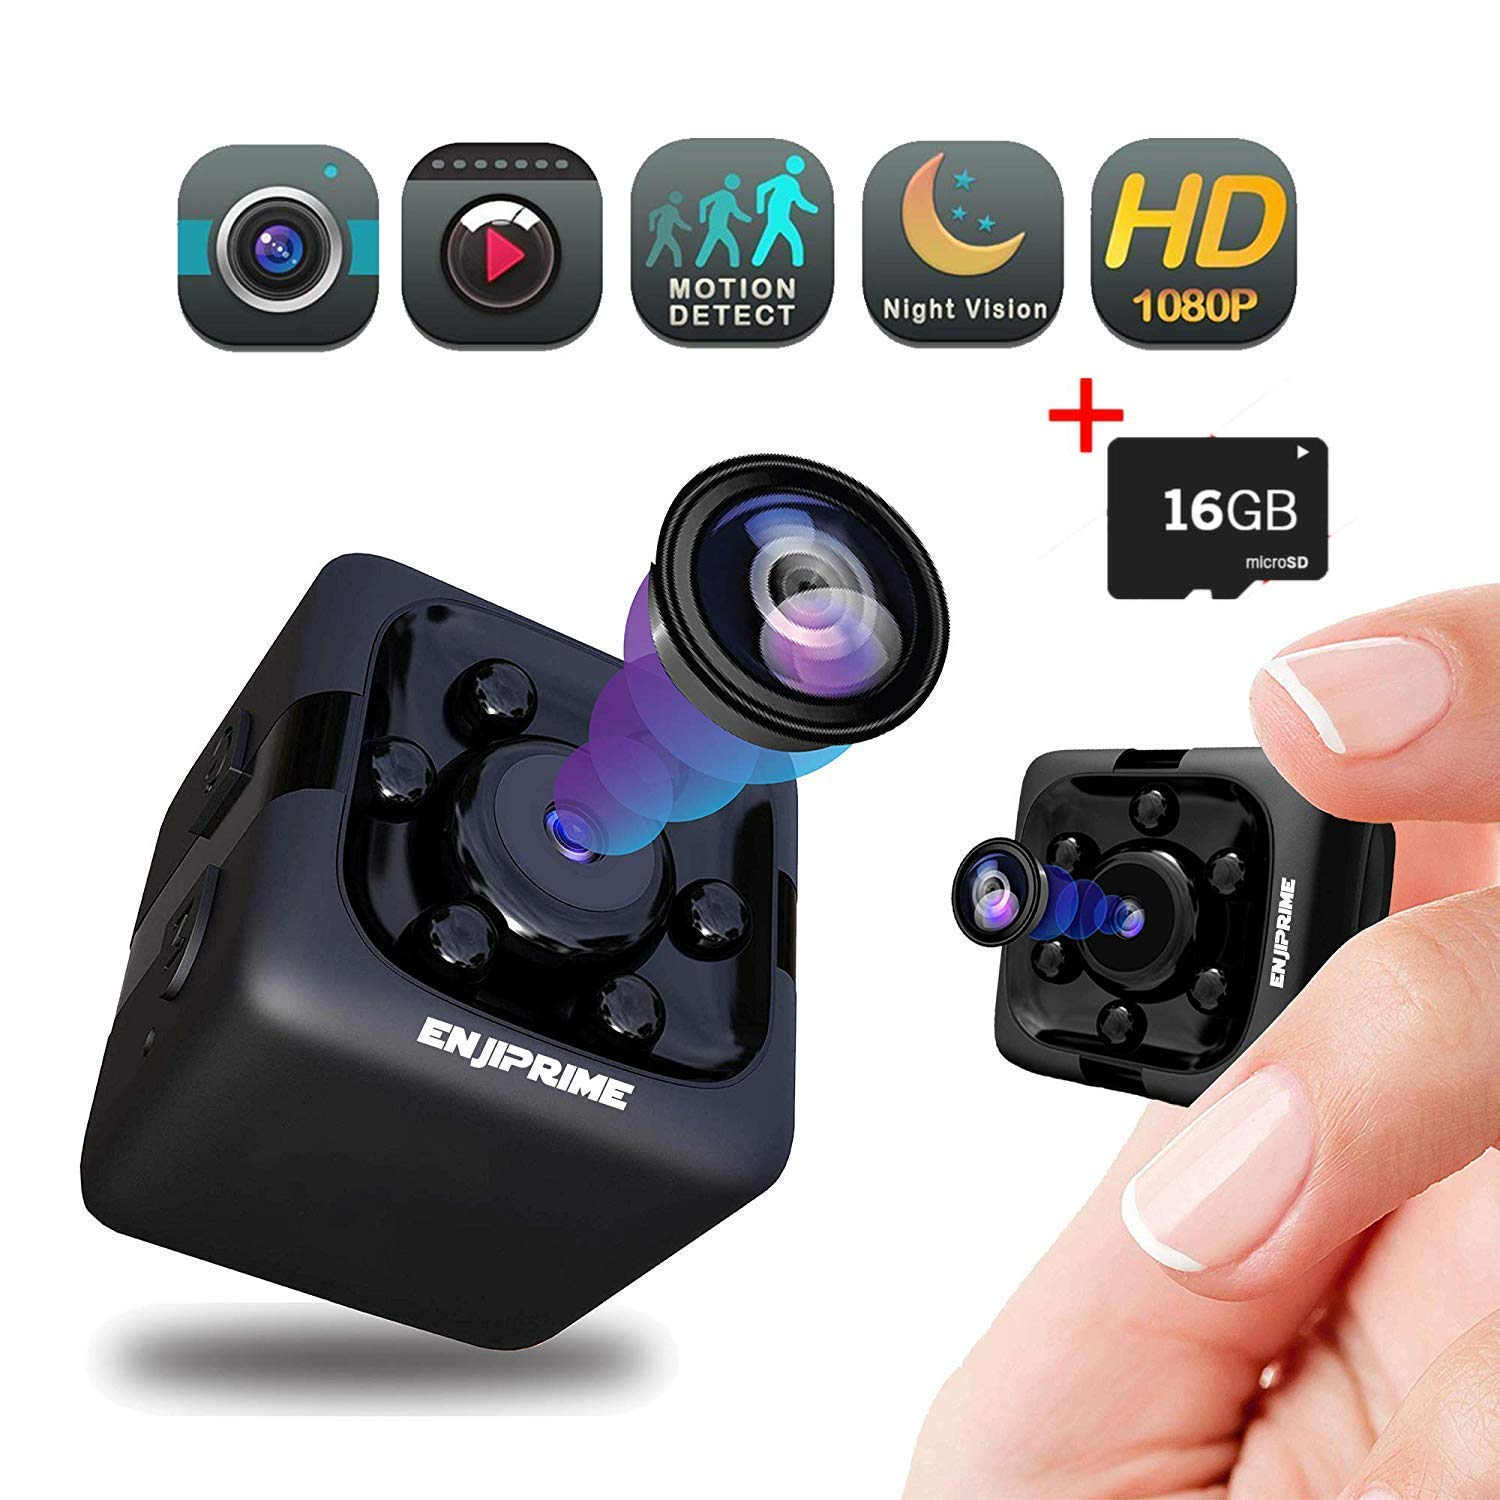 Spy Hidden Camera Nanny Cam - Mini Wireless Cop Cam Action Cameras for Indoor or Outdoor, Home Office or Car Video Recorder with 1080p HD Recording and Night Vision Monitoring Camera by Enji Prime